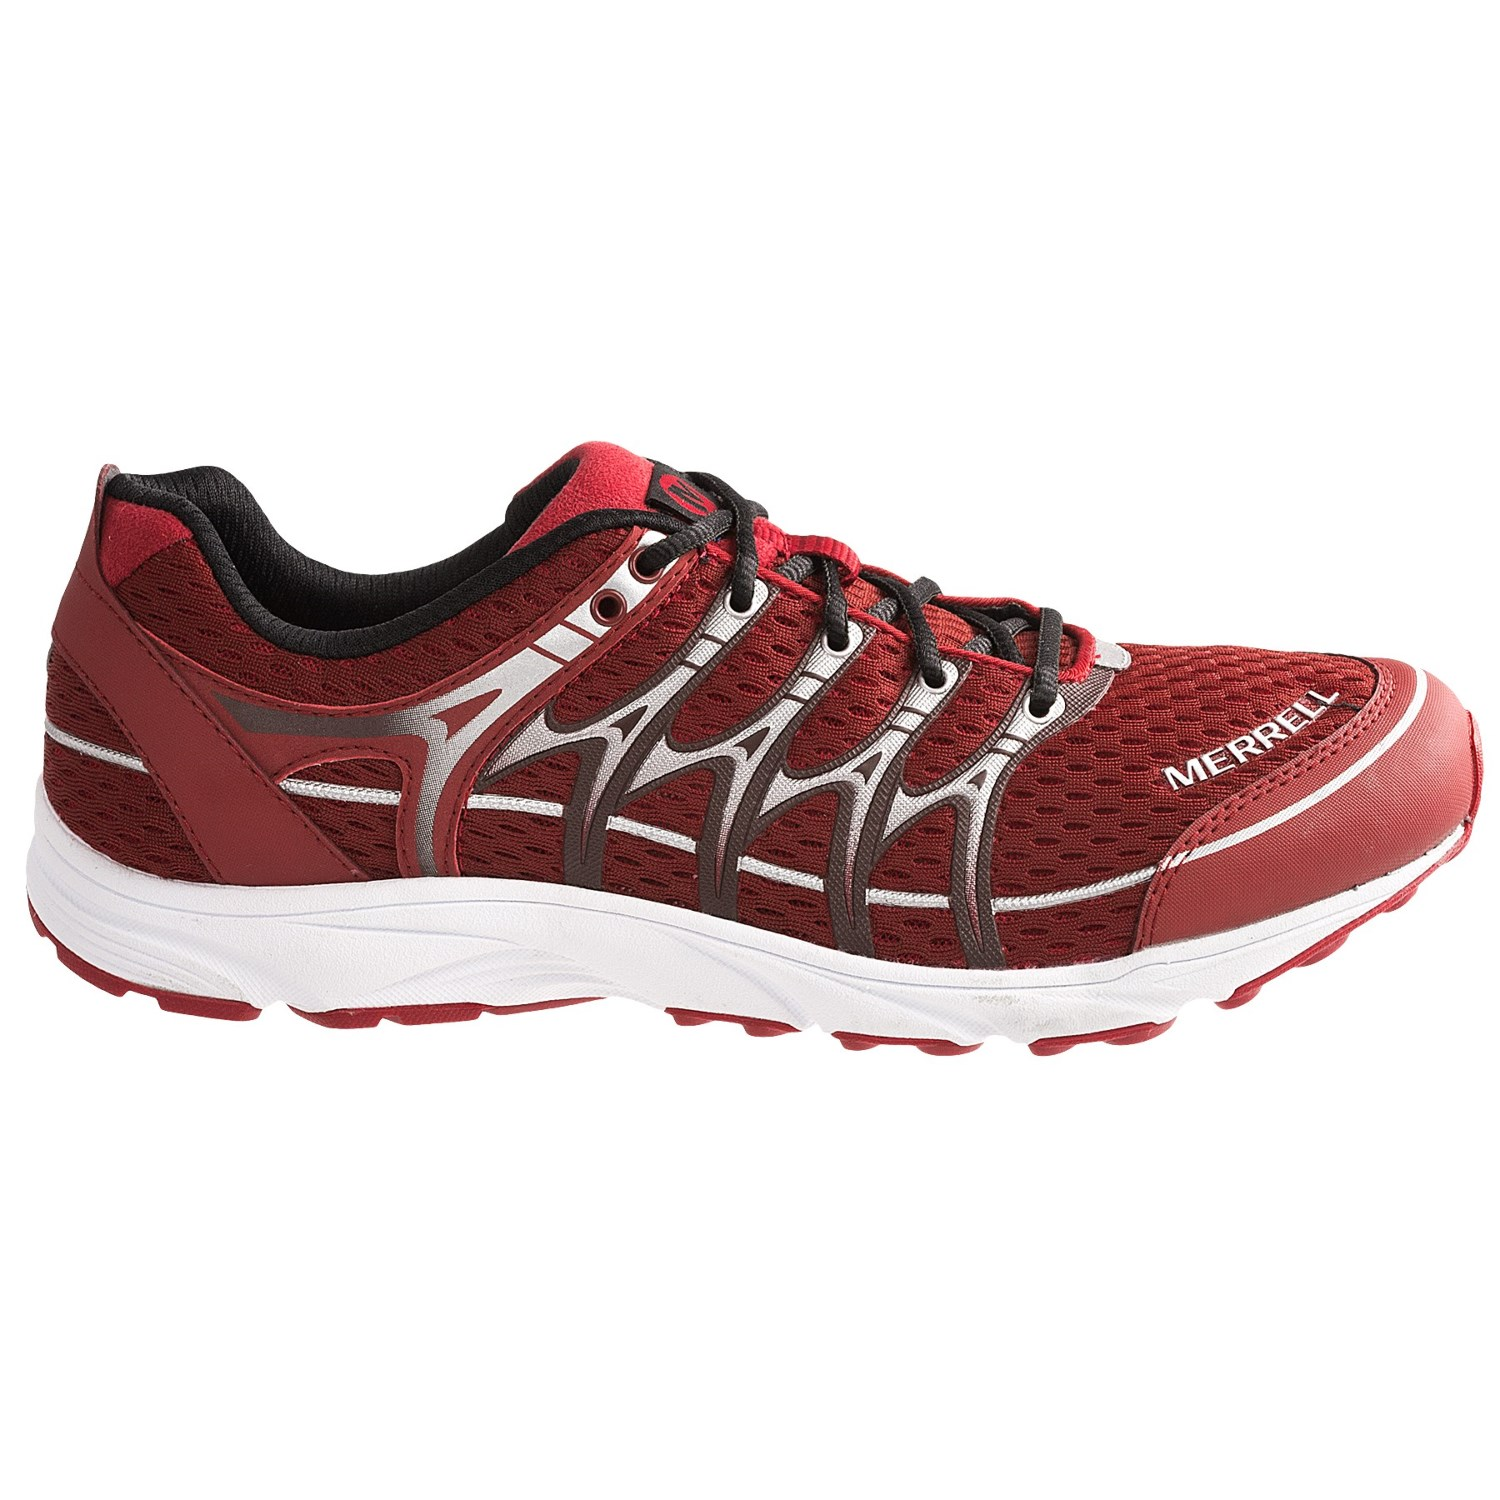 Clearance Merrell Running Shoes